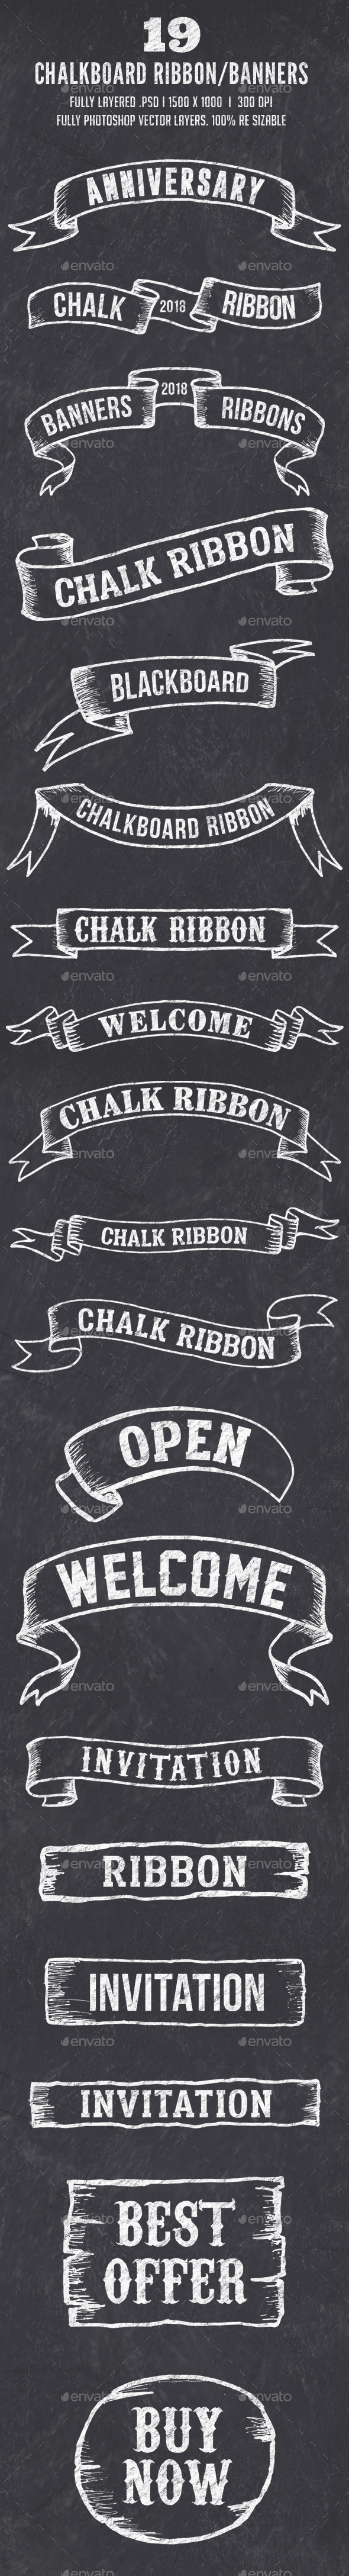 19 Chalk Ribbon Banners / Banner Set - Badges & Stickers Web Elements